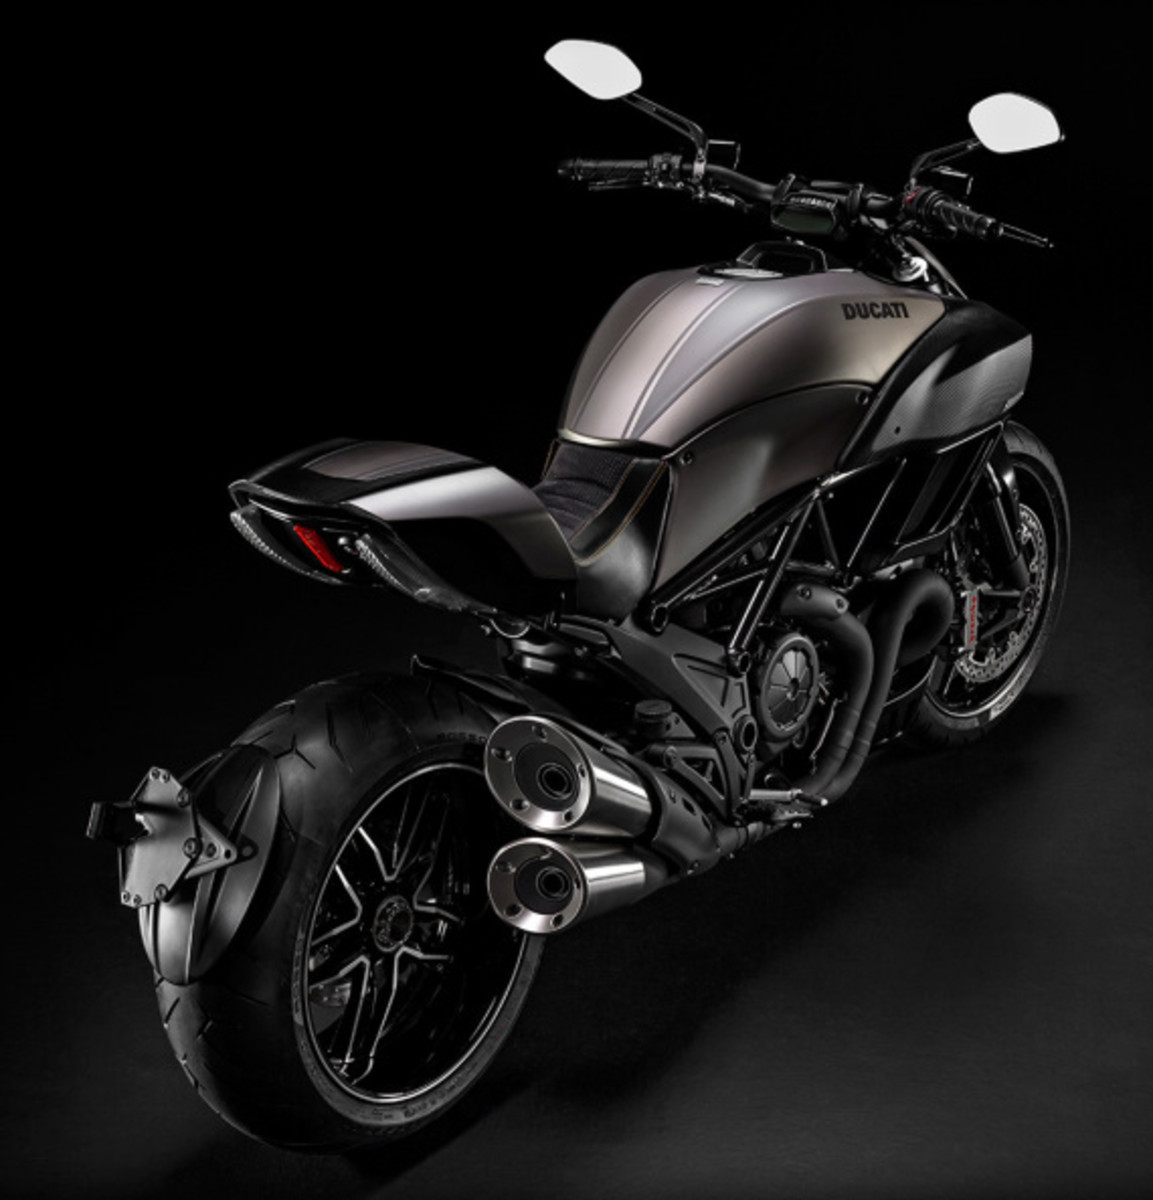 Ducati Diavel Titanium - Limited Edition Motorcycle - 3